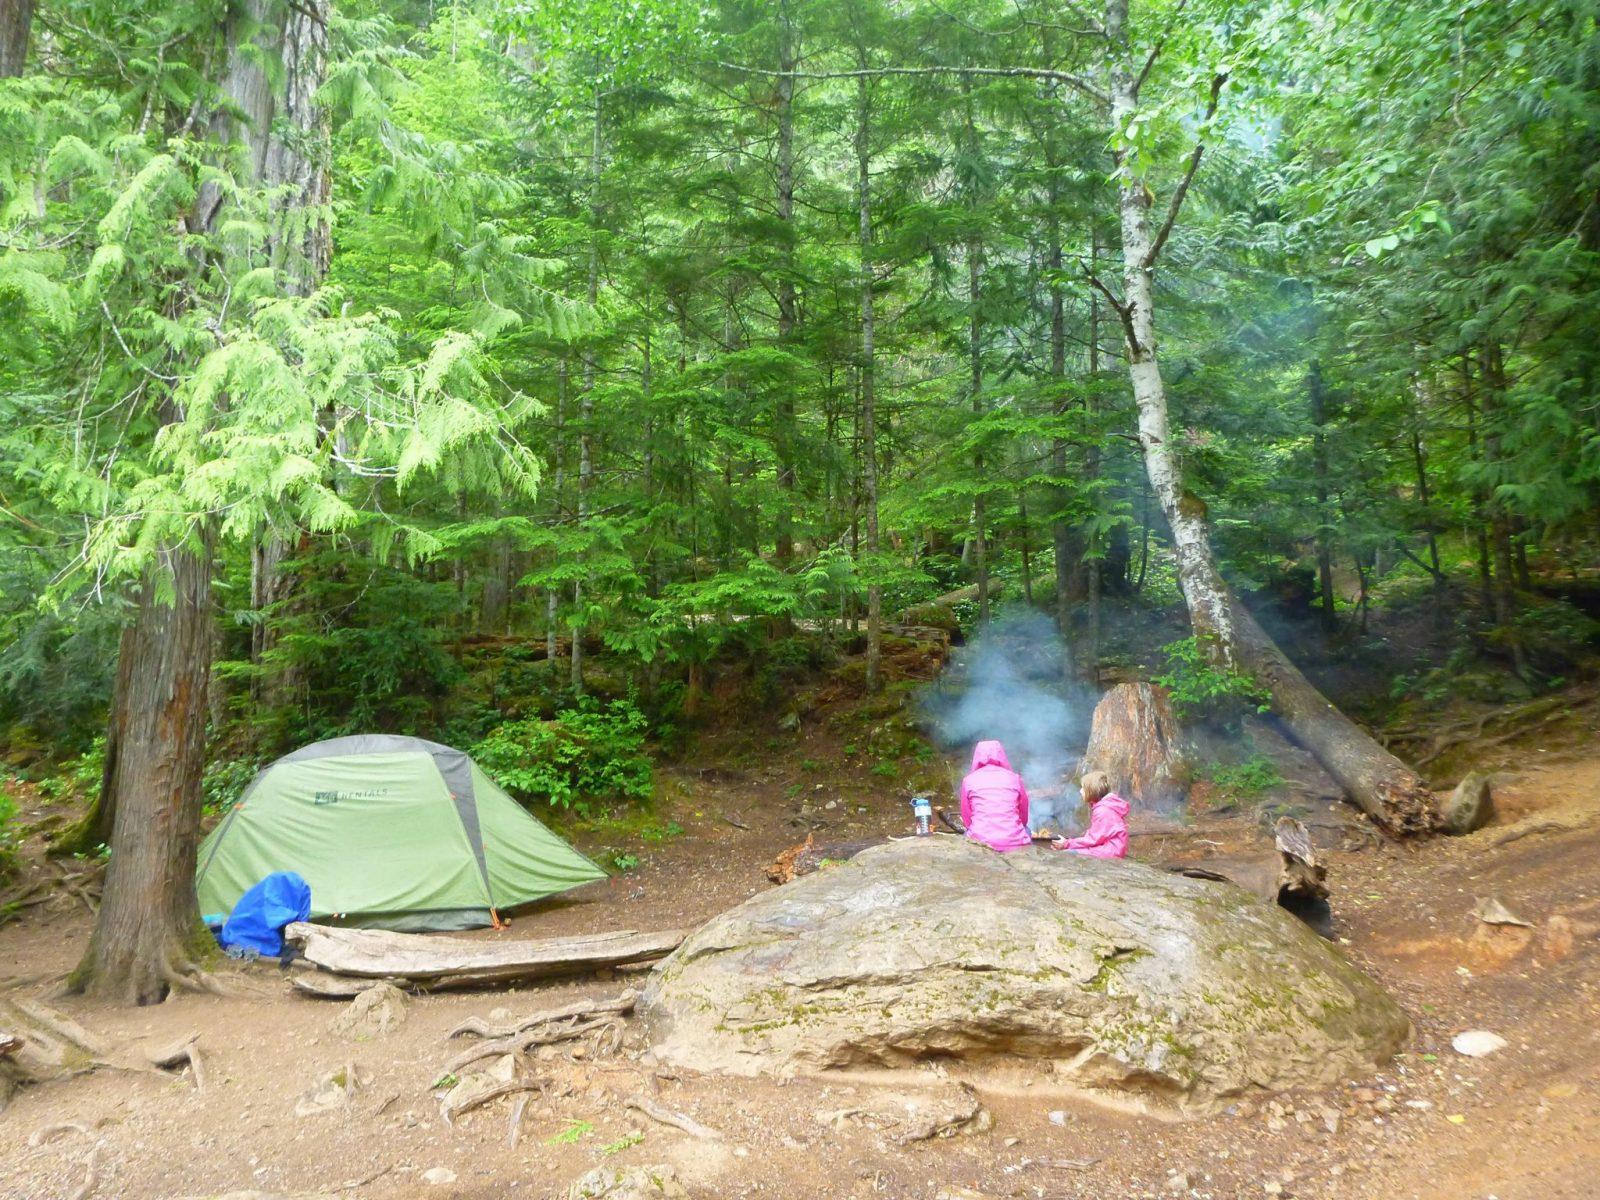 An adult and a child wearing pink rain coats sitting next to a campfire. There is a big boulder next to them and a green tent. The campsite is surrounded by trees.